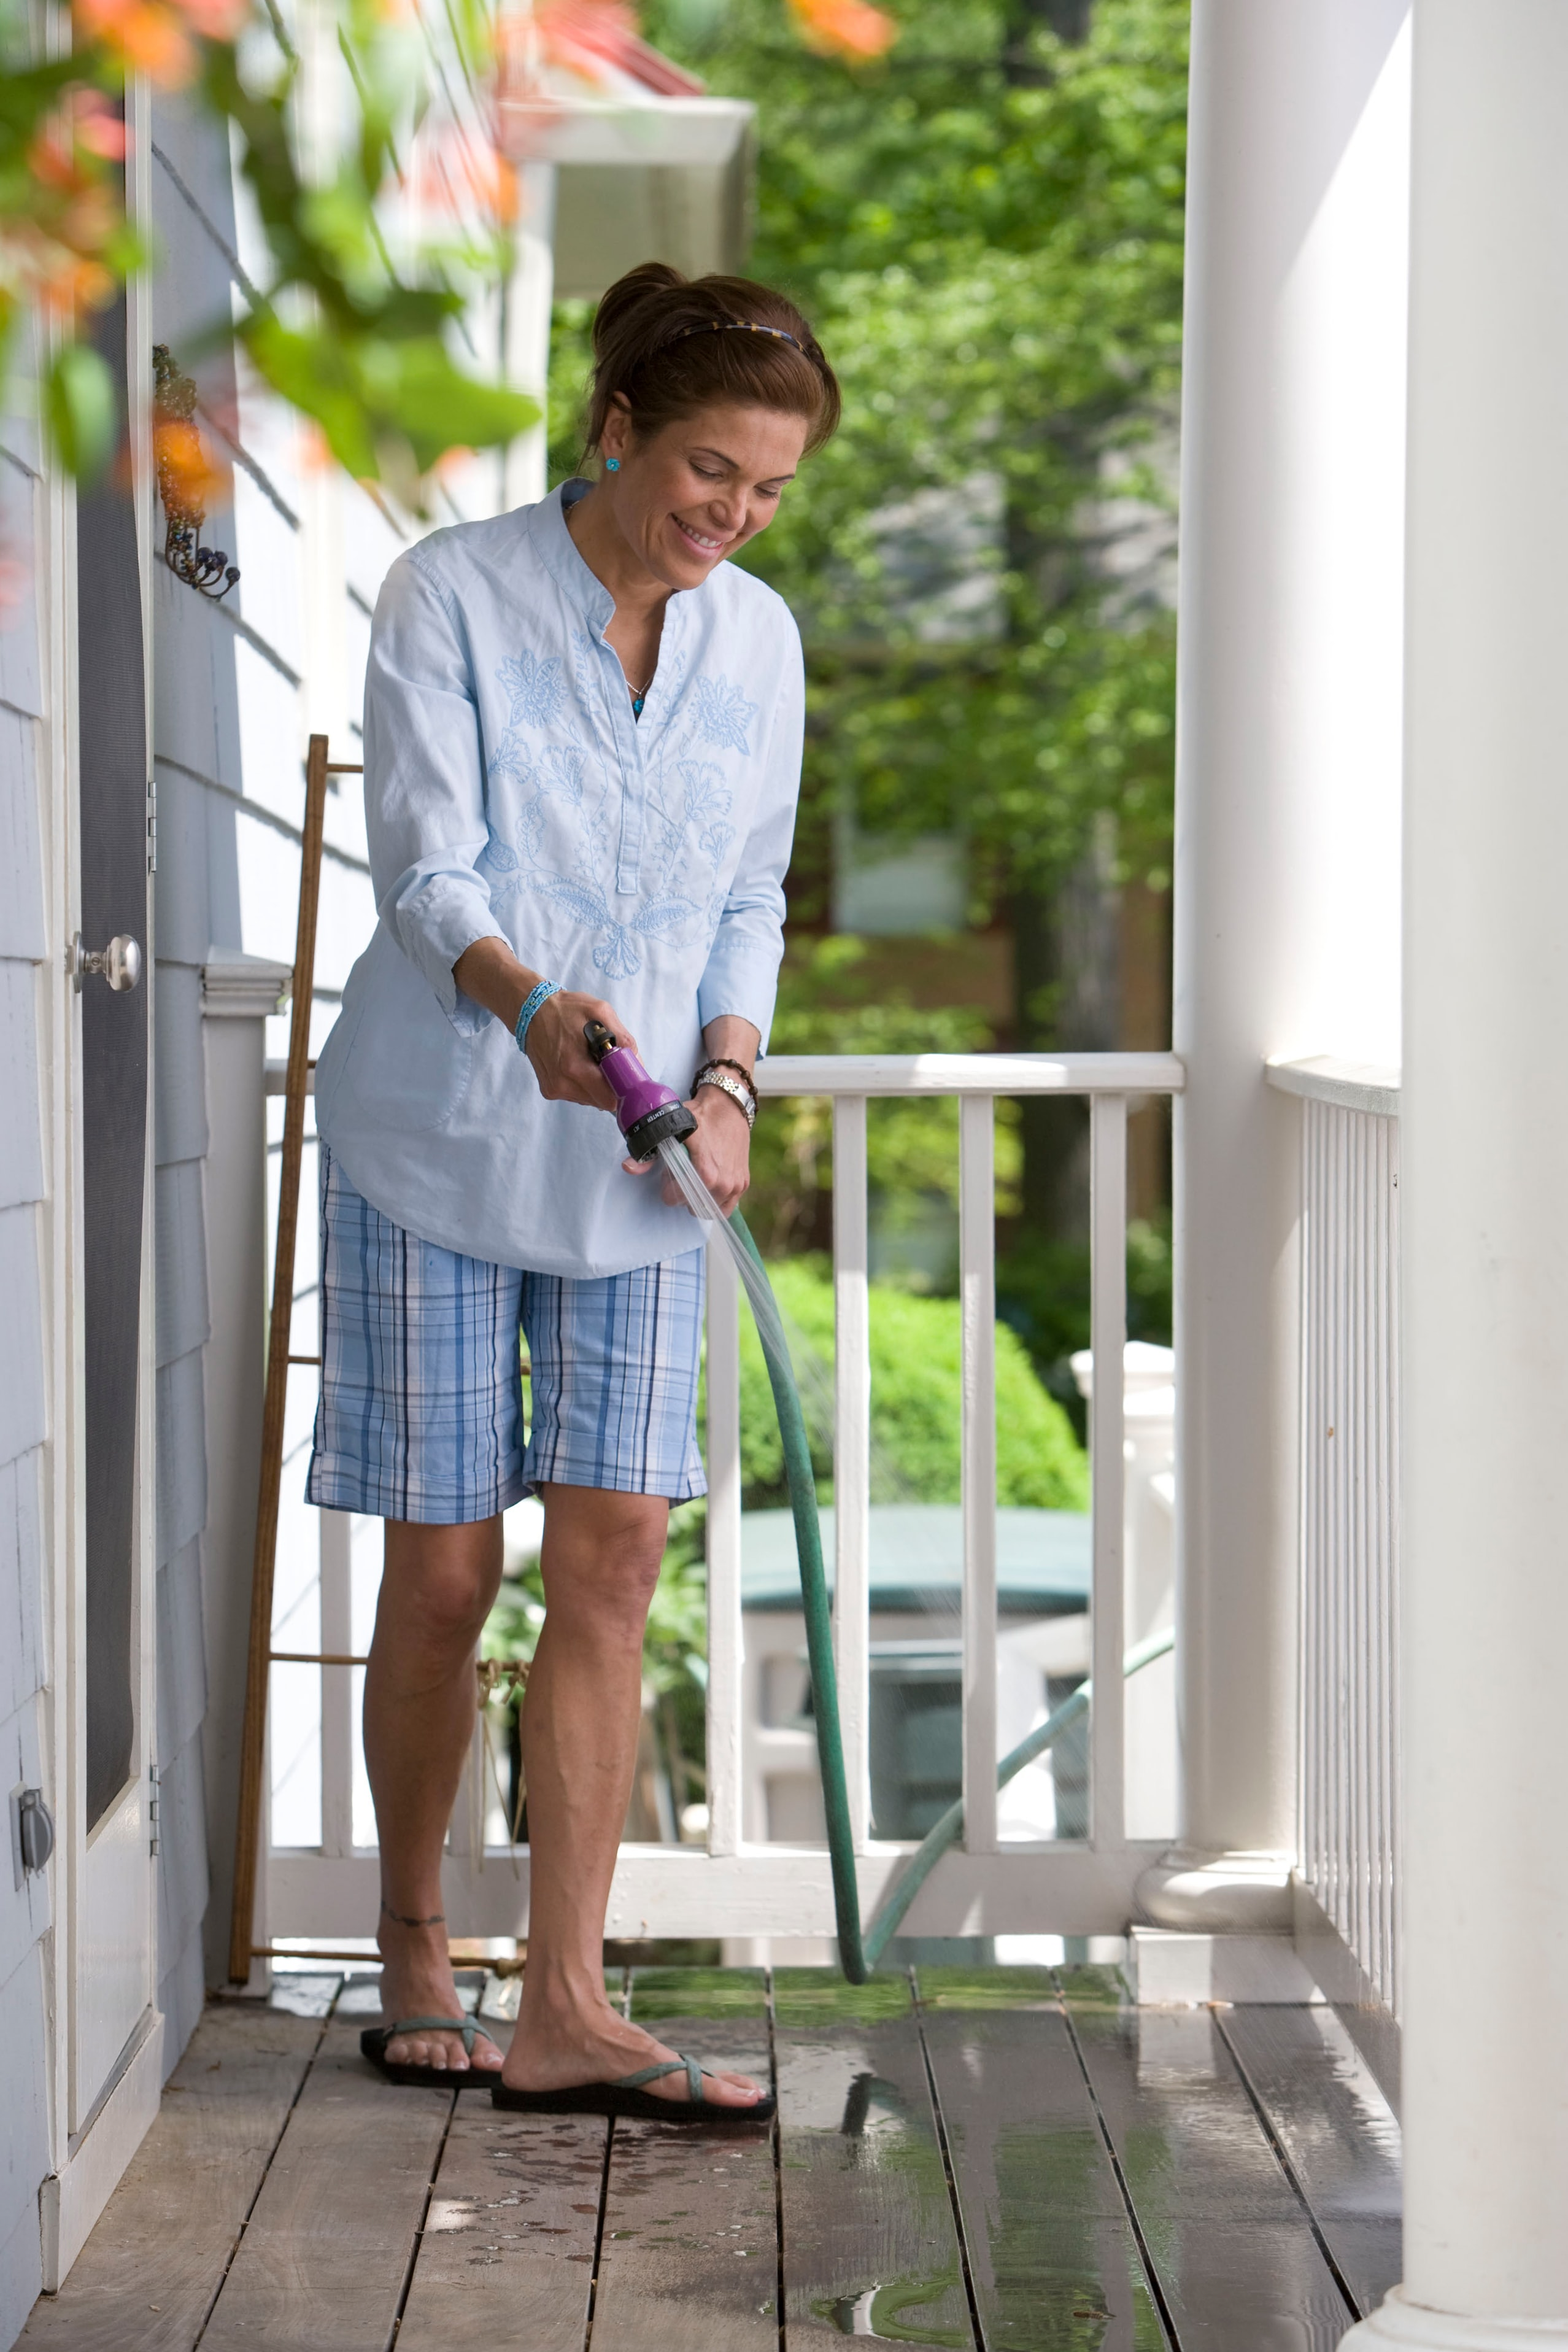 Spring Cleaning: 4 Ways to Approach It and Win!'s featured image